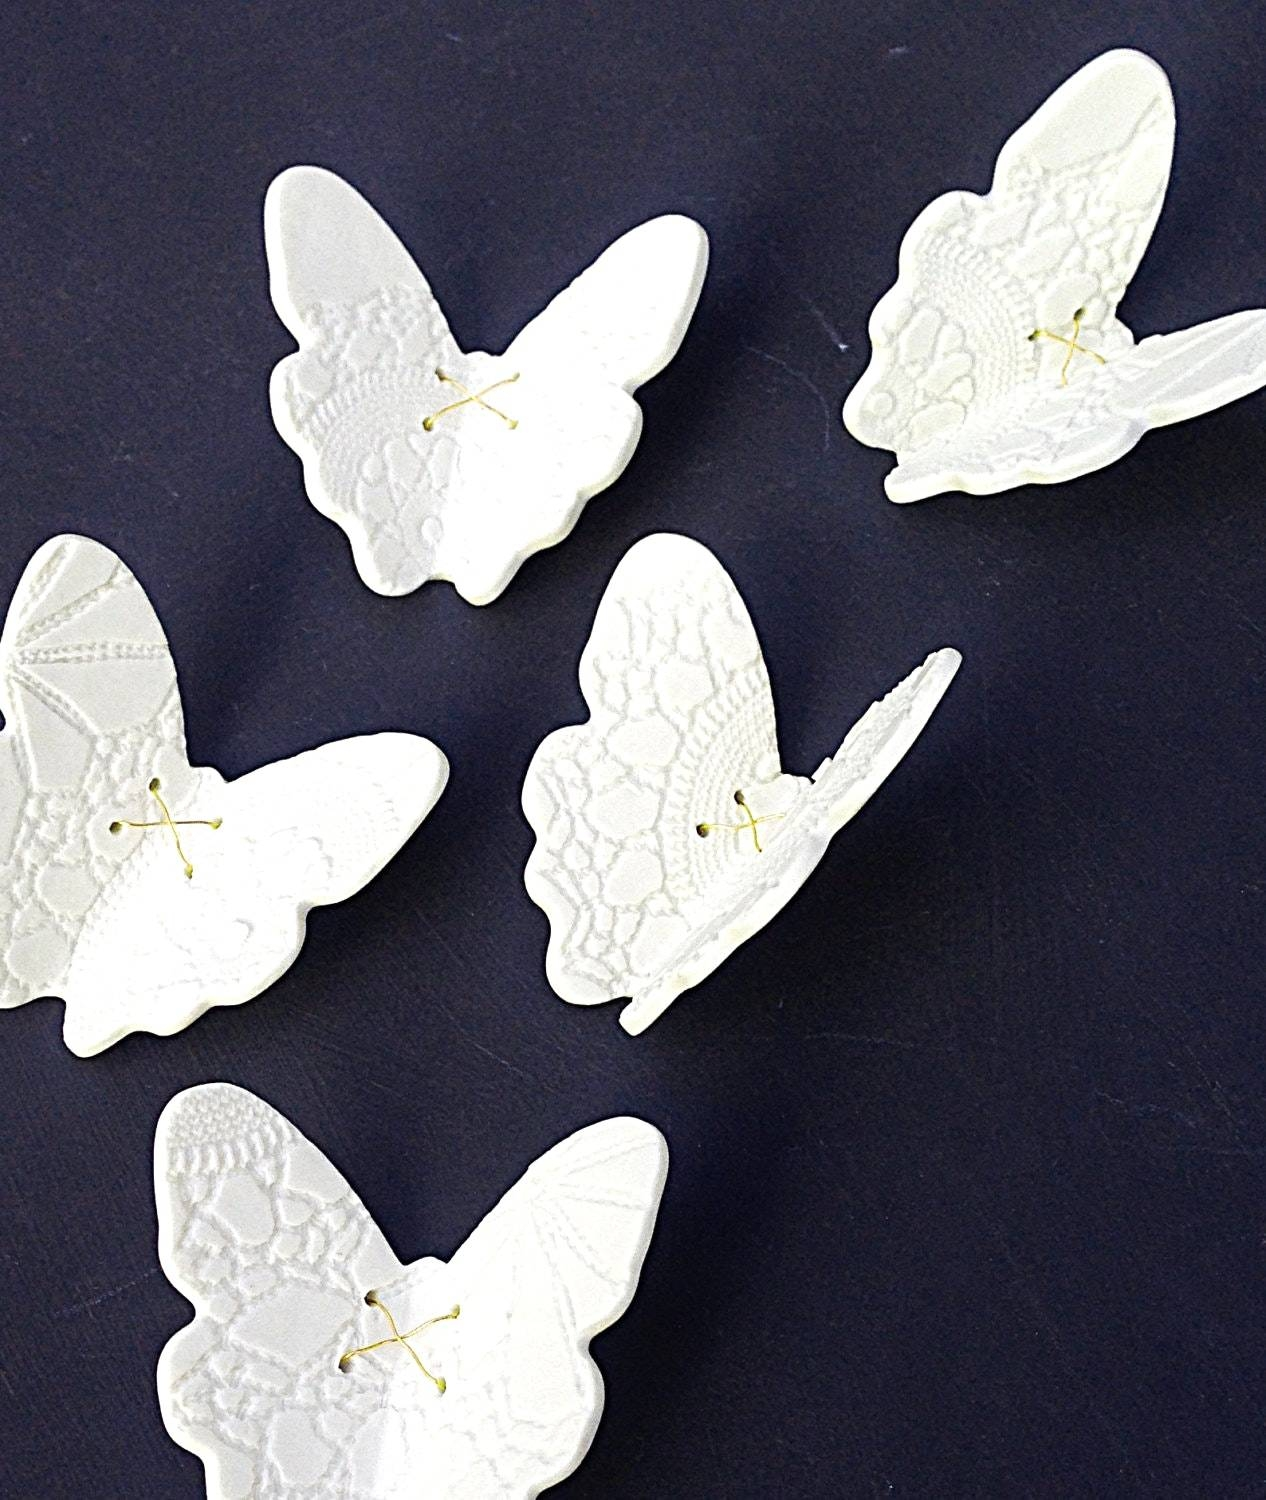 White Ceramic Wall Art With Best 25 Ideas On Pinterest Clay And Regarding 2018 Ceramic Butterfly Wall Art (View 7 of 30)